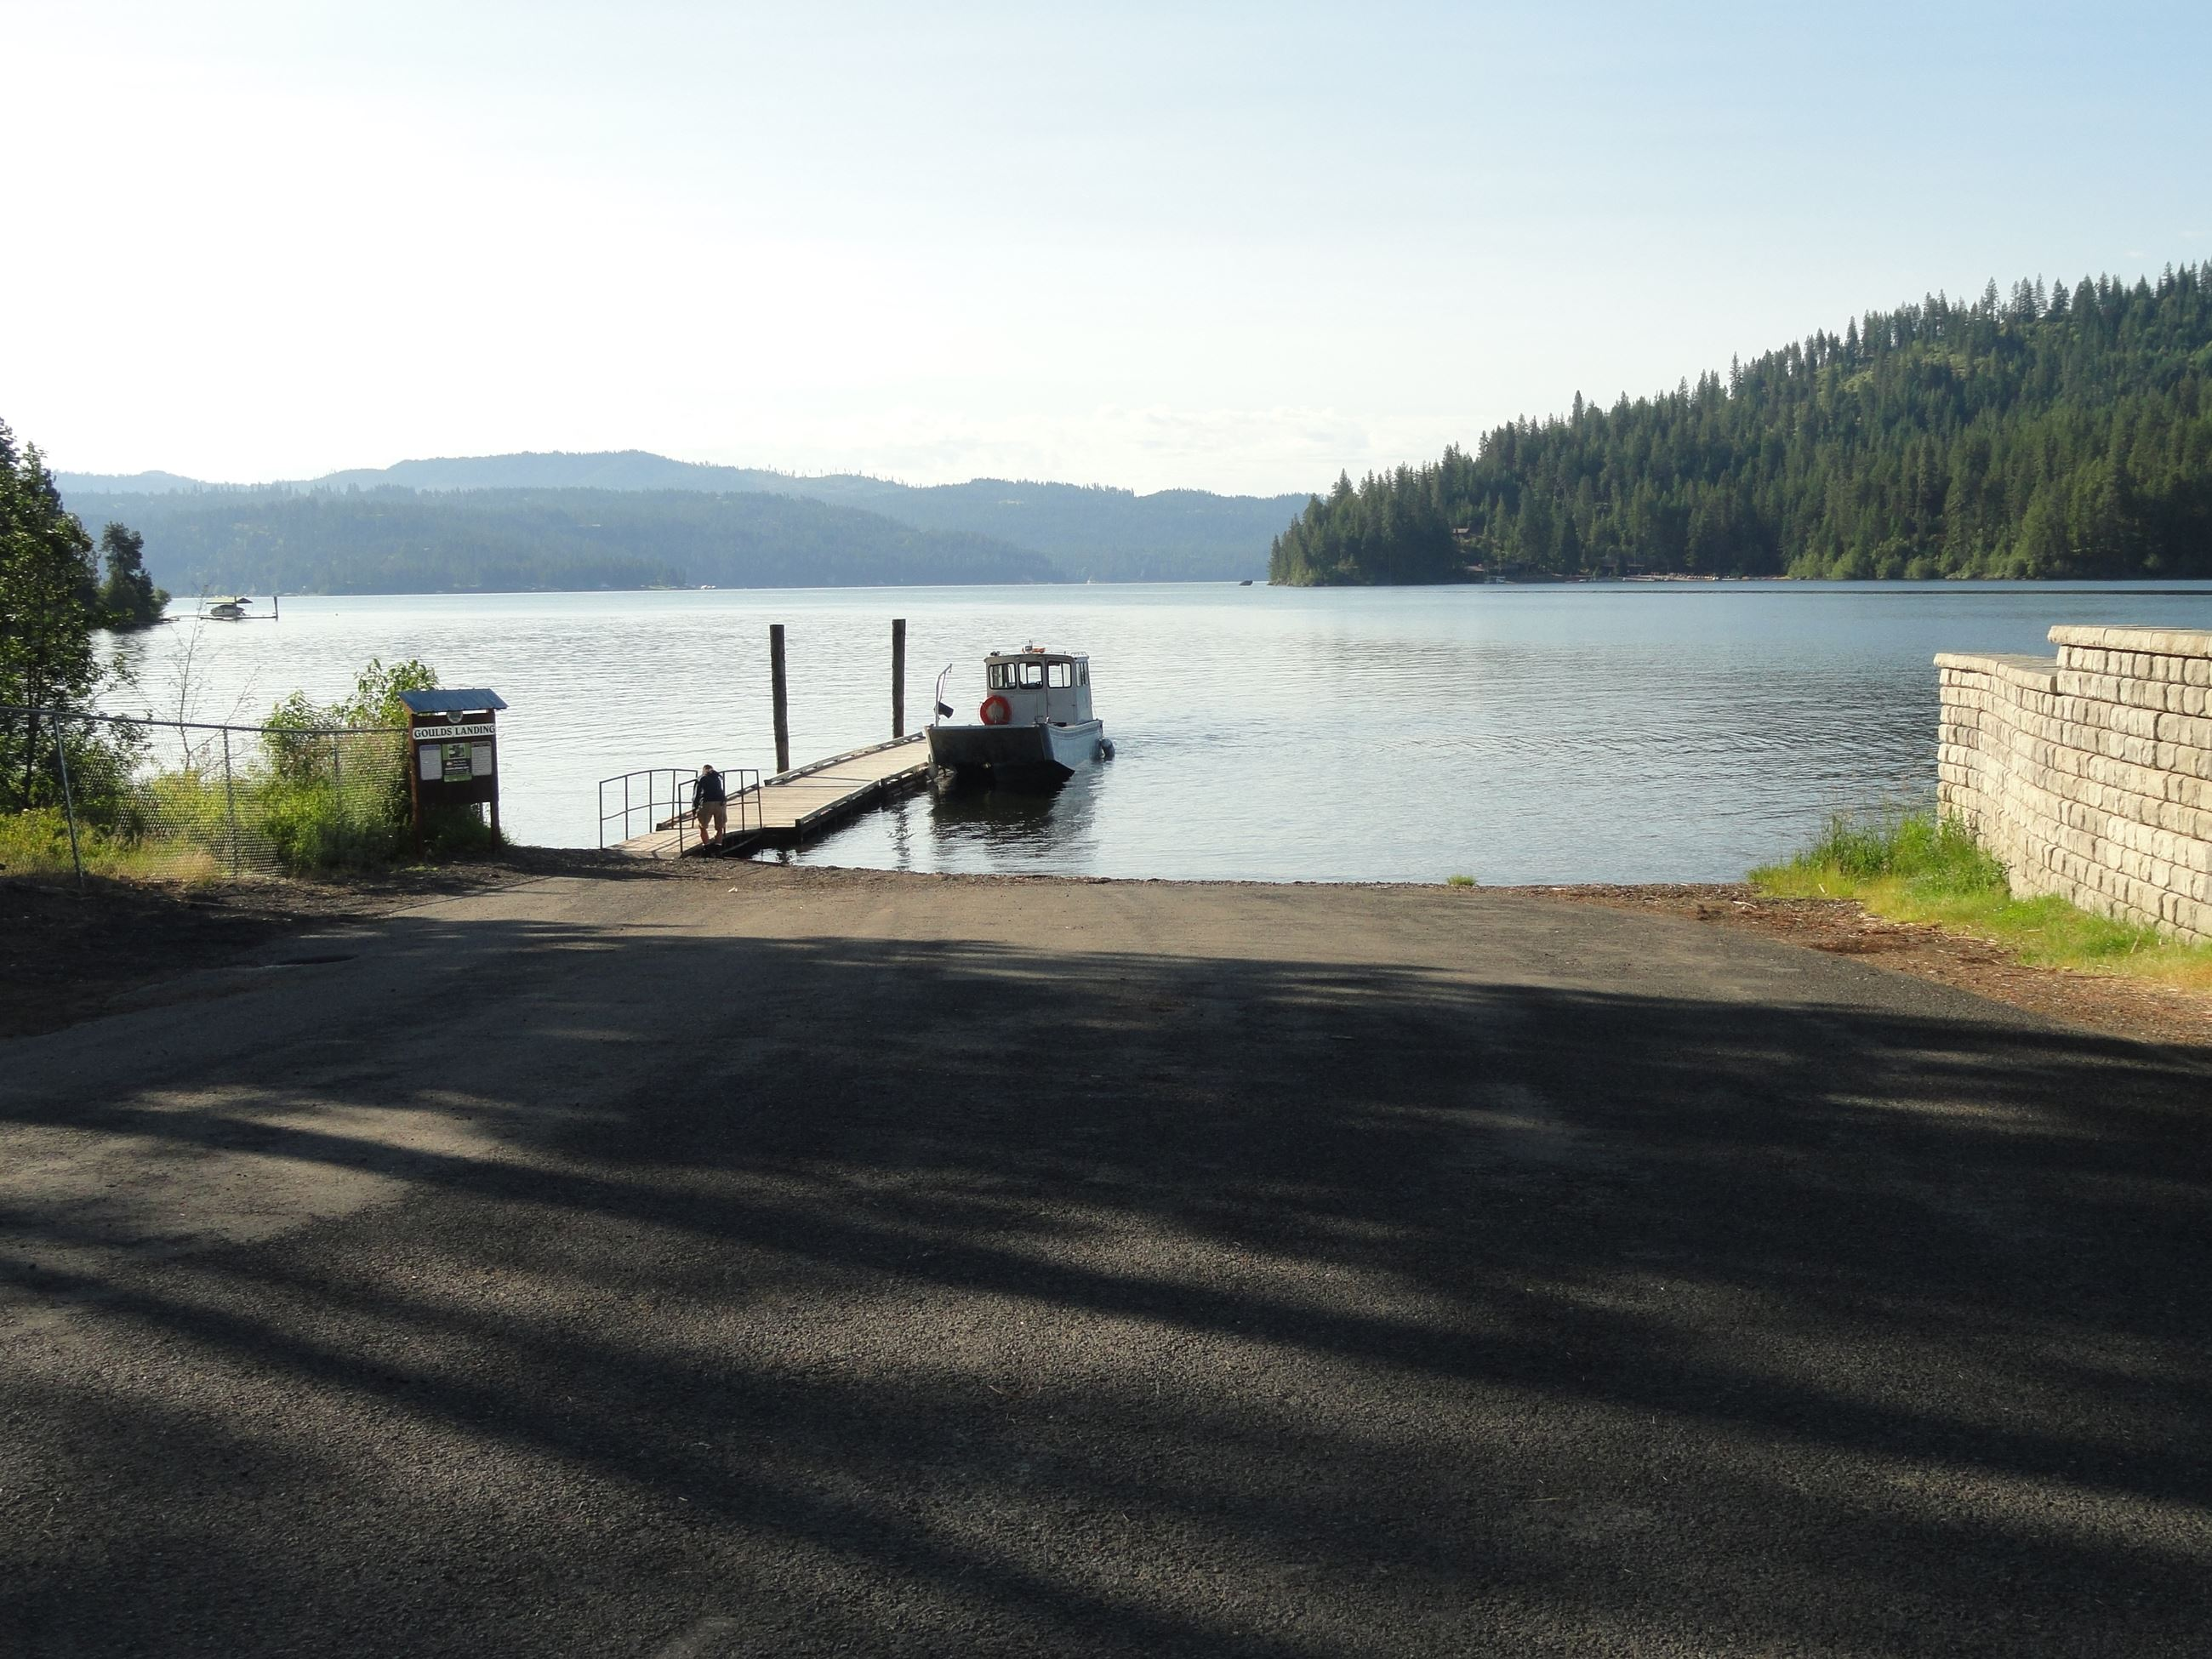 Boat launch leading to lake